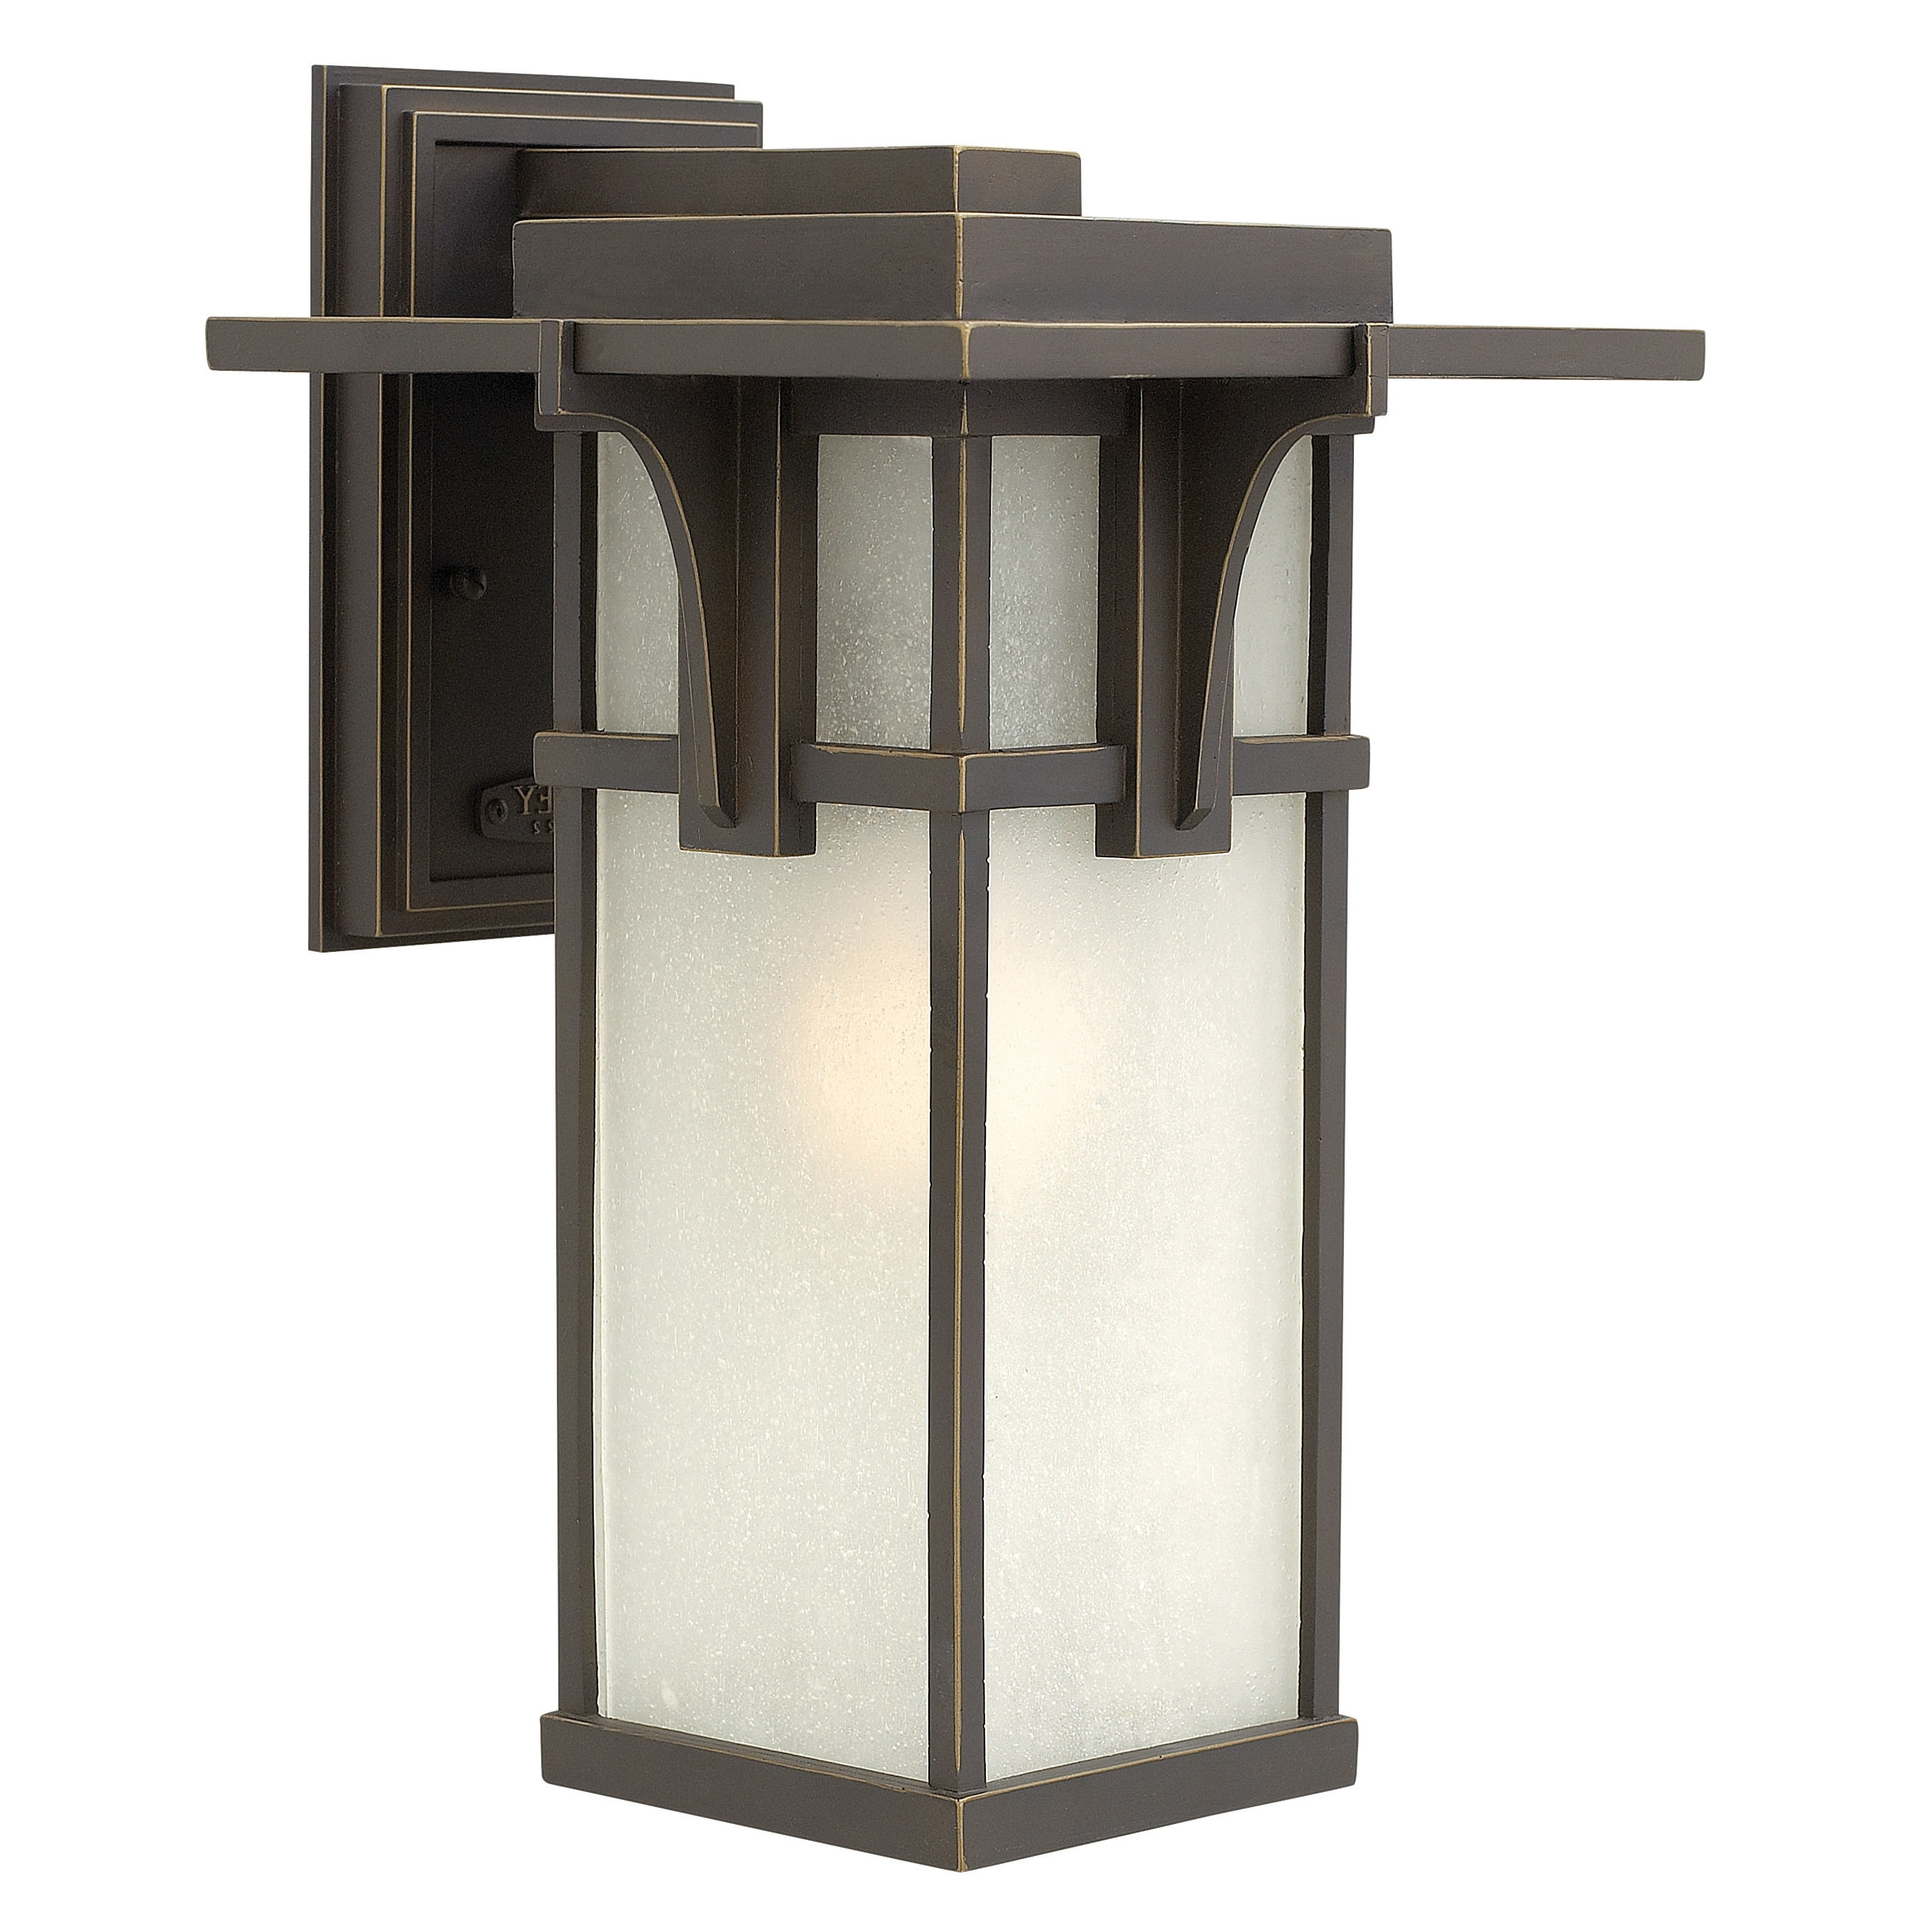 Favorite Modern Garden Porch Light Fixtures At Wayfair Within Missionshaker Outdoor Wall Lighting Wayfair Manhattan 1 Light (View 6 of 20)